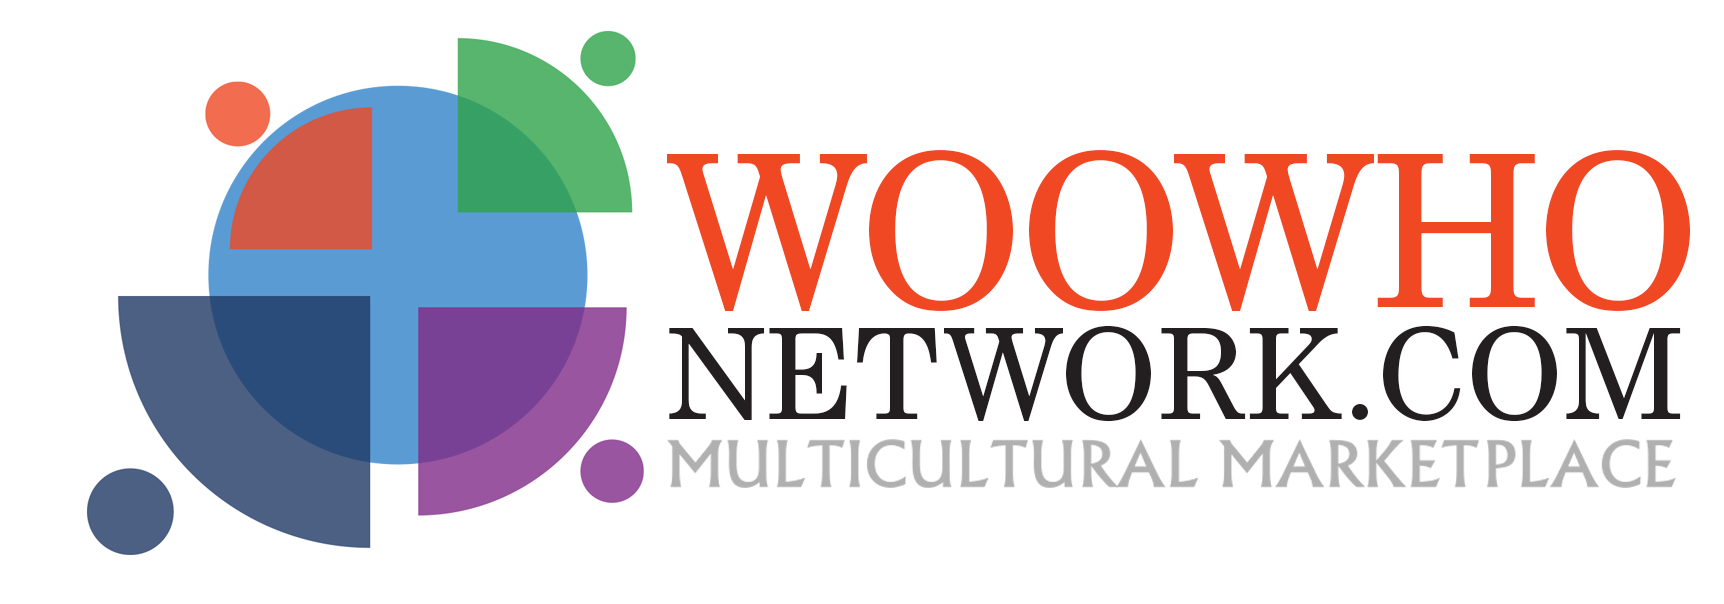 WooWho Network